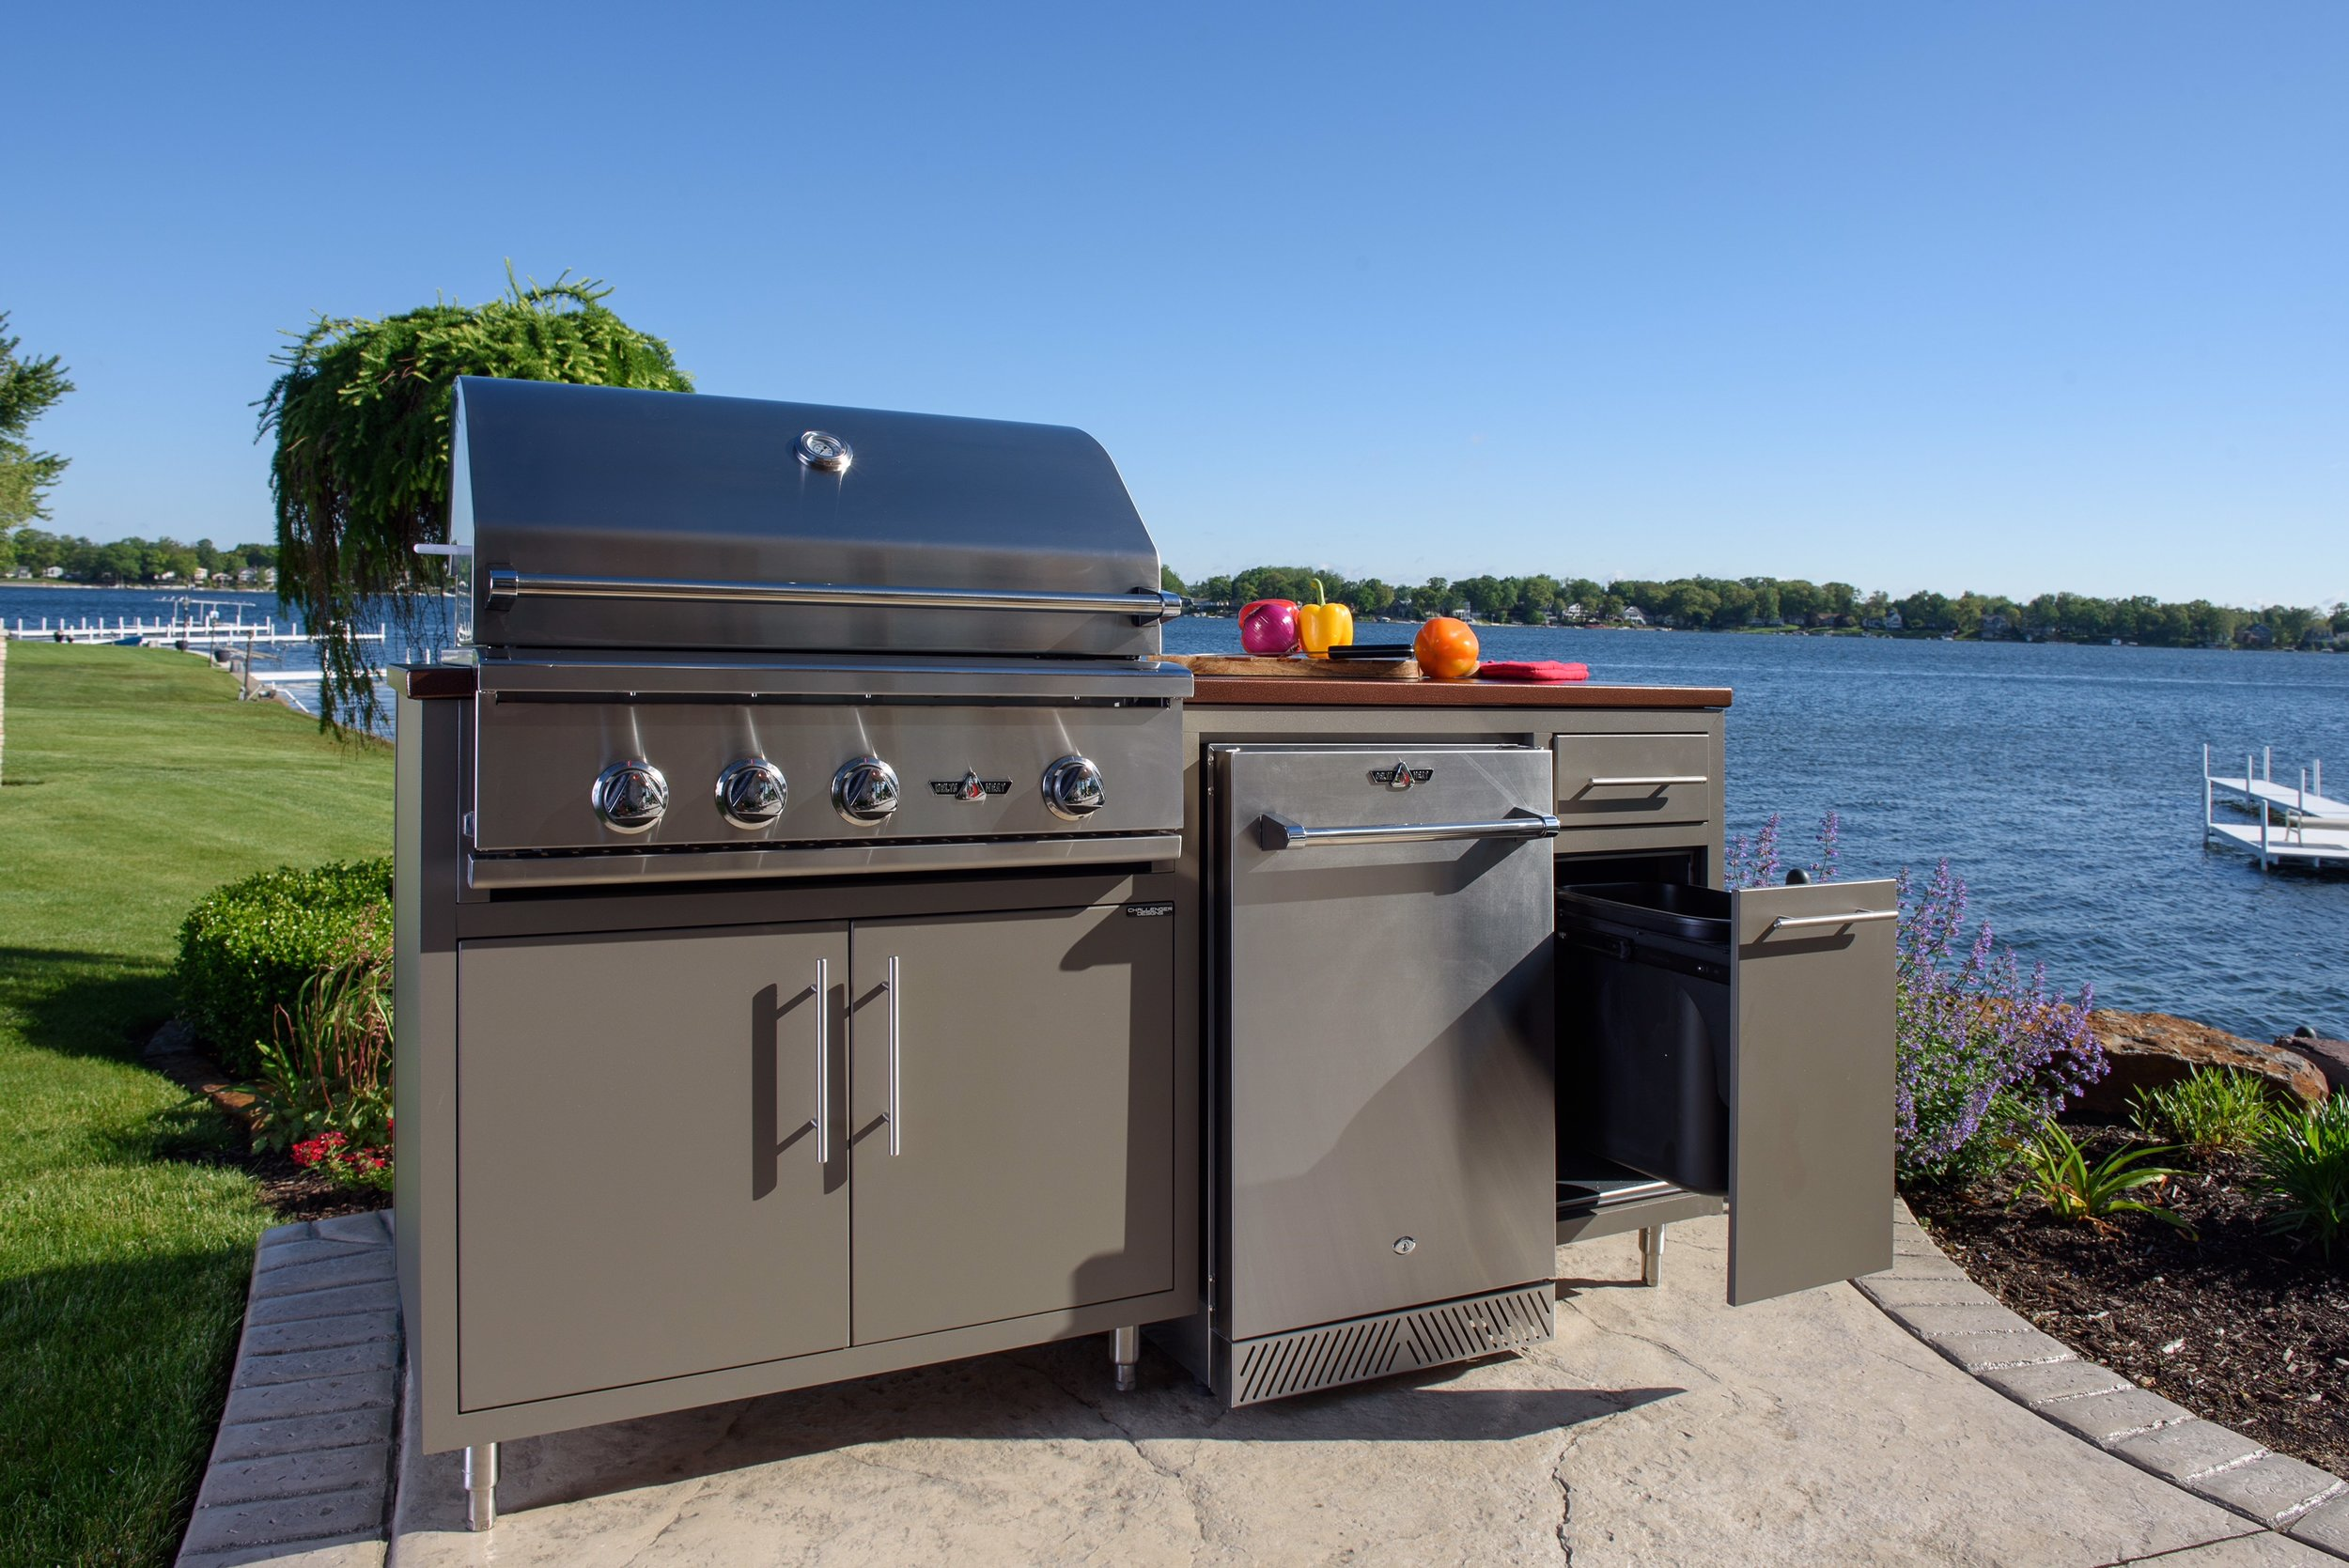 """ONLY $5,567!  Model 17COGI-72 is 72"""" wide (30"""" deep) and includes a Delta Heat 32"""" Grill (LP or NG), a 20"""" Delta Heat outdoor refrigerator, 18"""" Trash drawer (can NI), a single drawer and double door cabinet.  (With Infrared Rotisserie $5,741. With Rotisserie and Sear Zone $5,857)  Color pictured is Grey Glimmer with Silver Vein counter-top. Also available (in stock) in Cappuccino with Copper Vein counter-top!"""